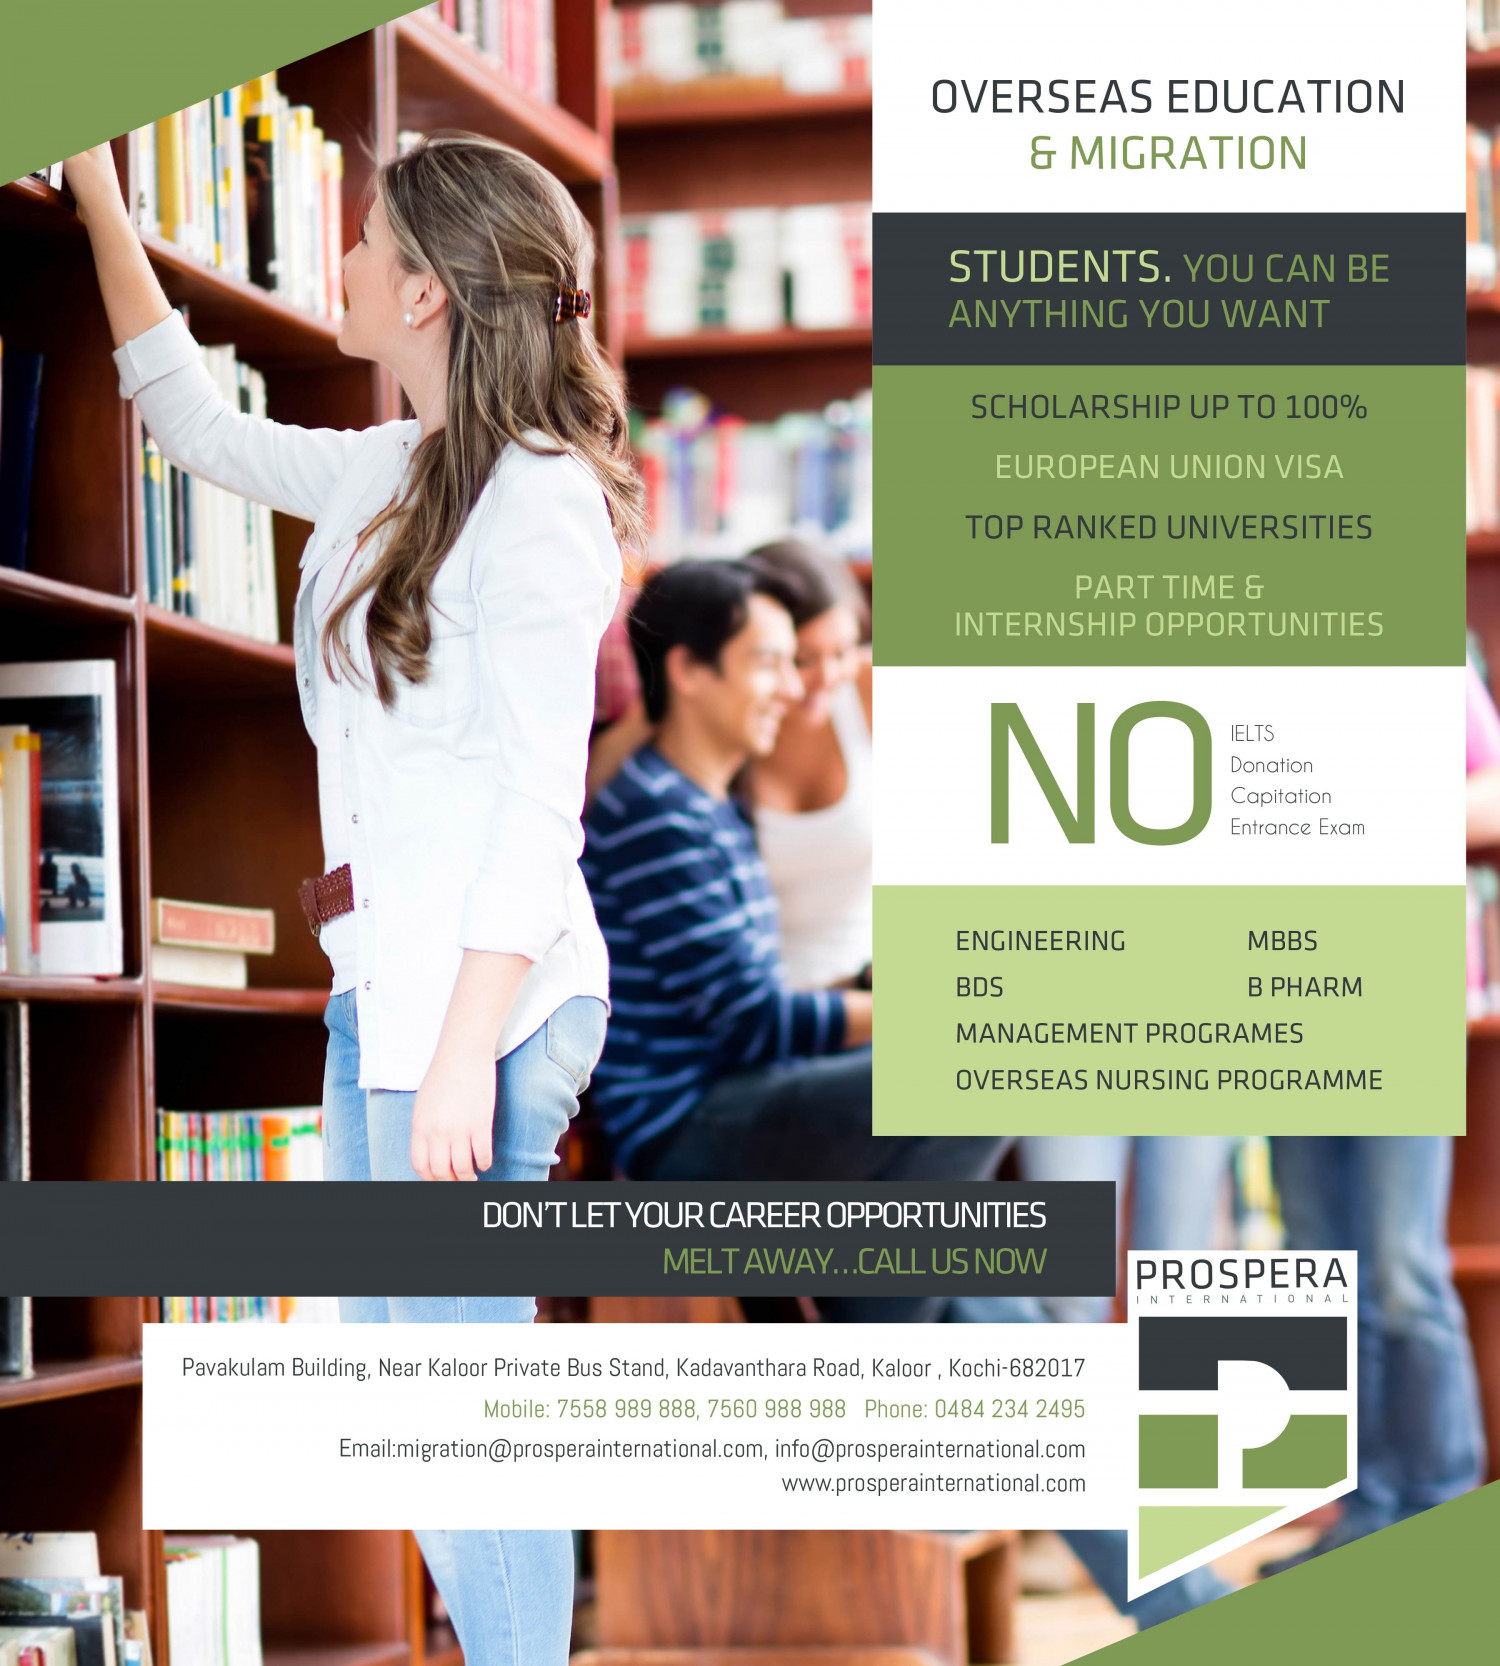 Overseas education and Migration Infographic